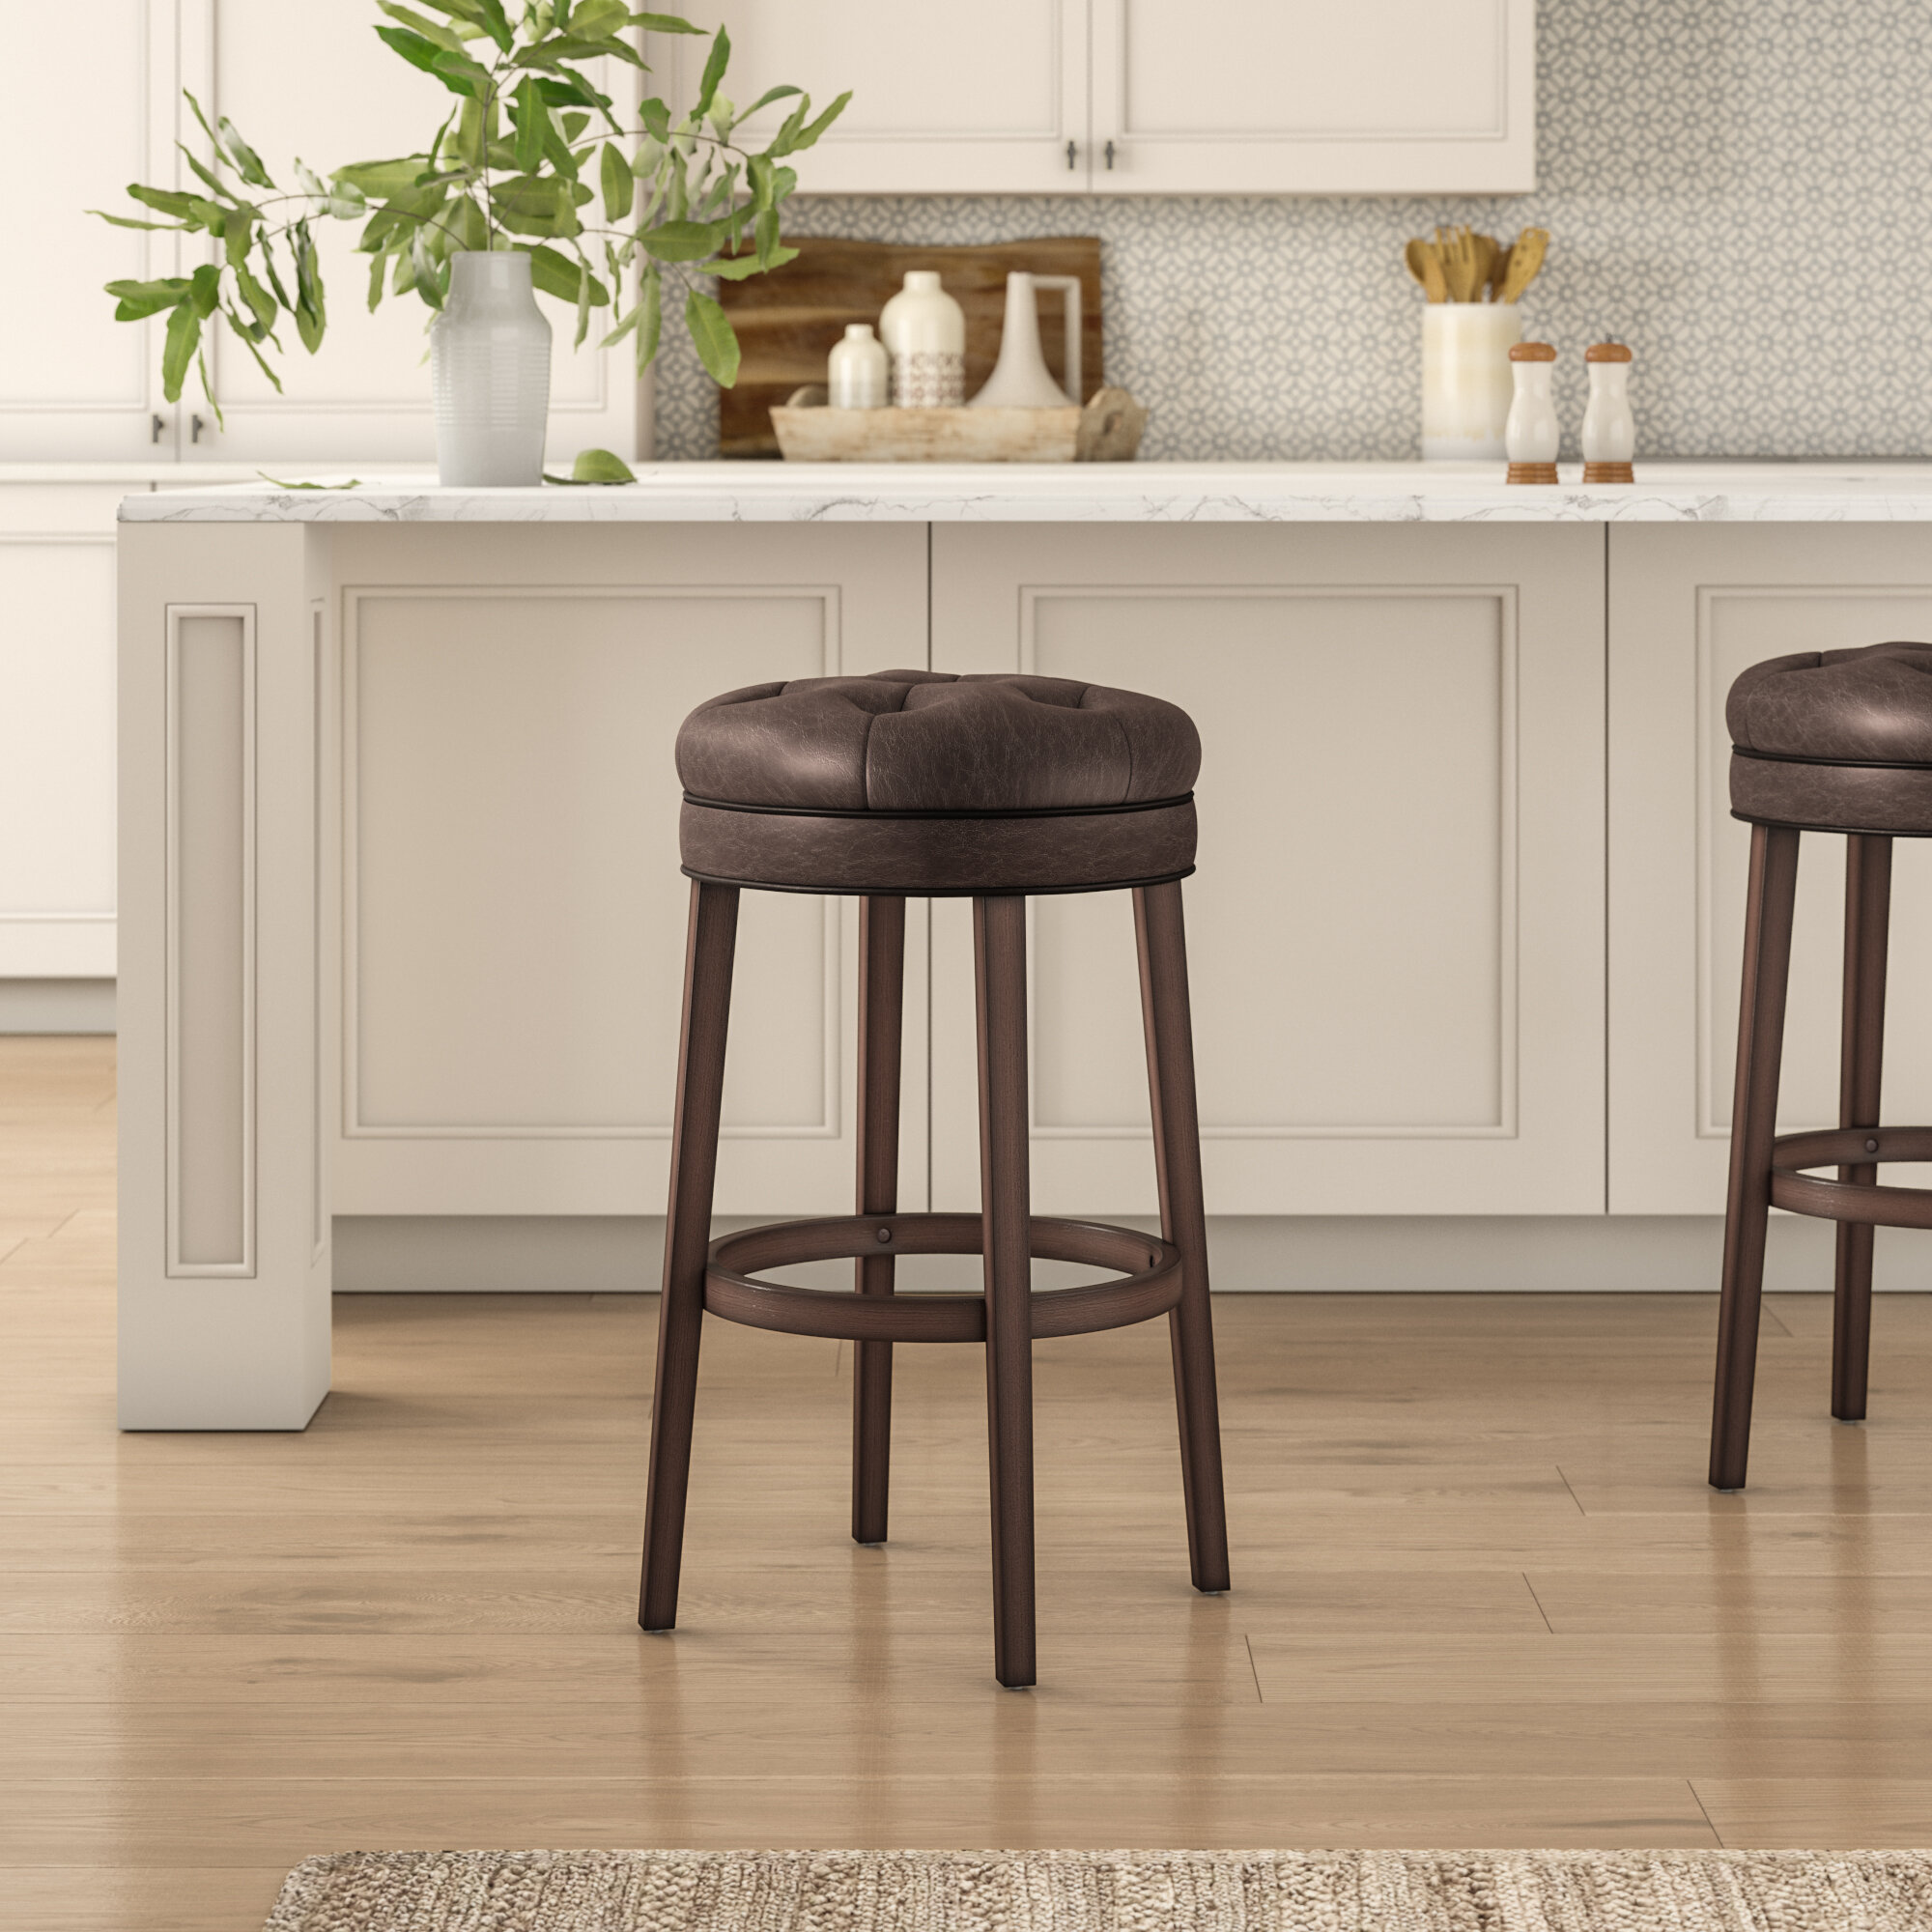 Fabulous Saundra Swivel Bar Stool Caraccident5 Cool Chair Designs And Ideas Caraccident5Info